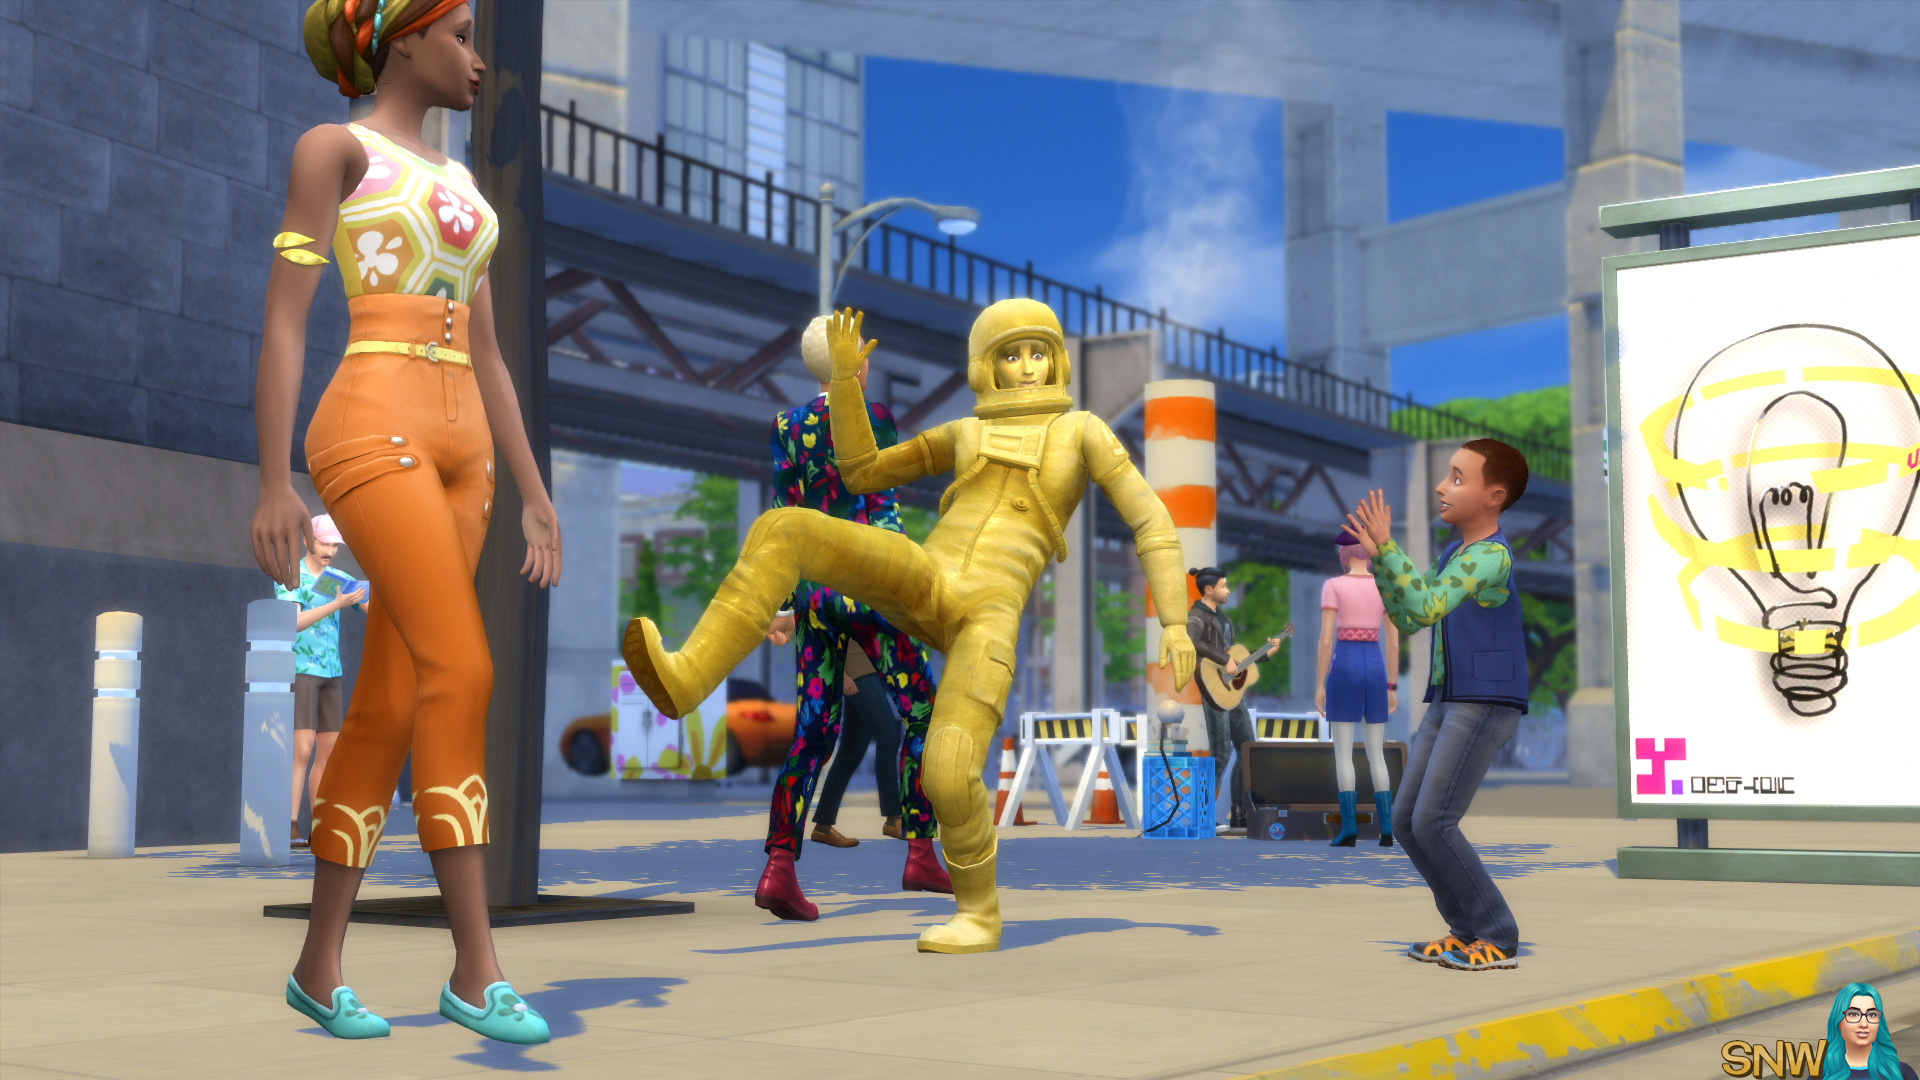 The Sims 4: City Living screenshot